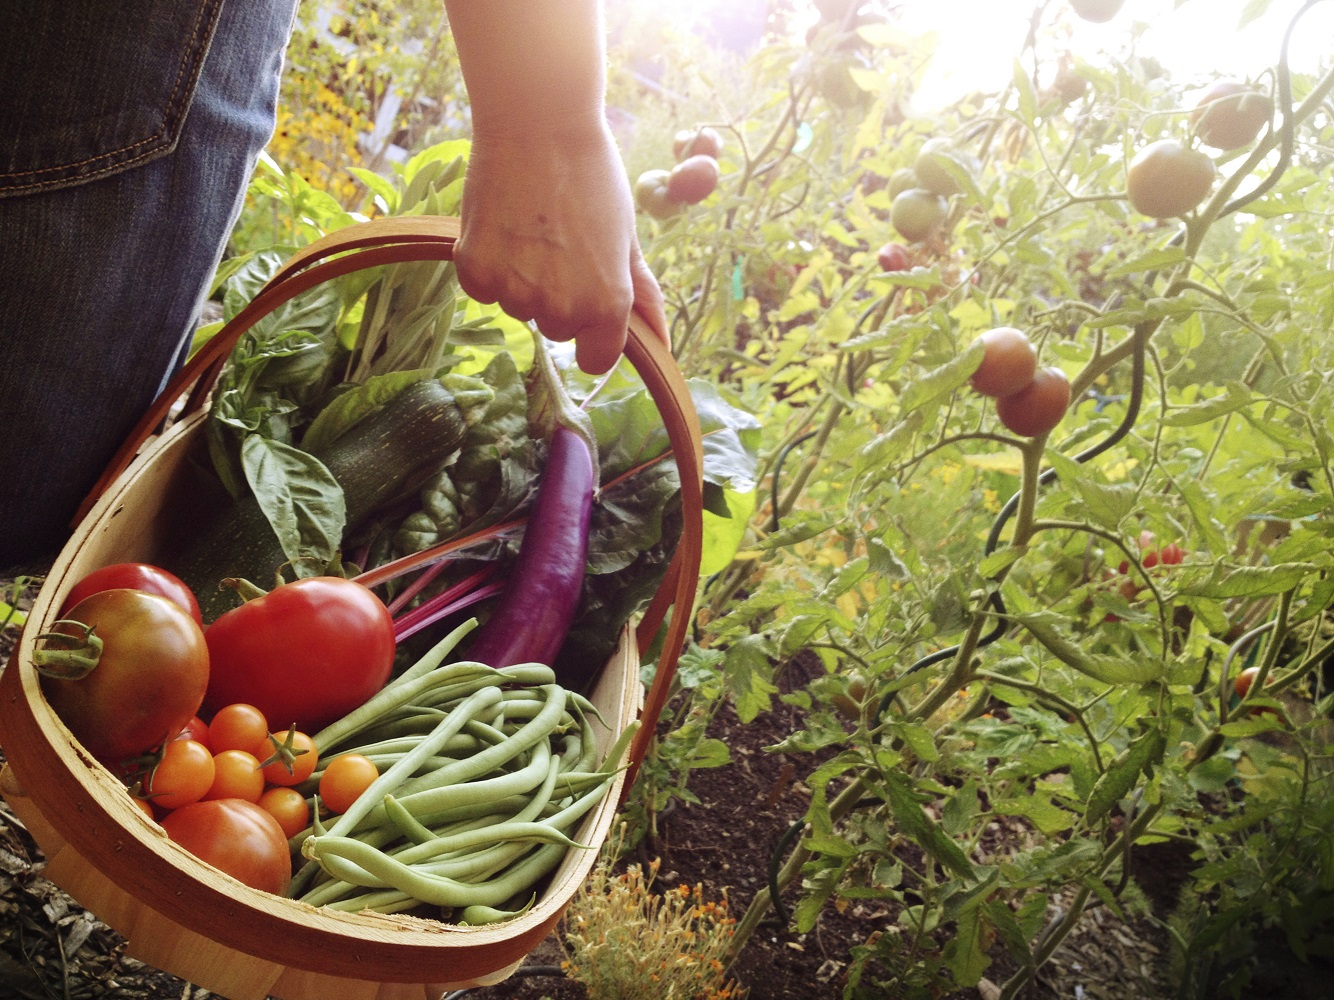 walking through a garden with a basket filled with fresh vegetables